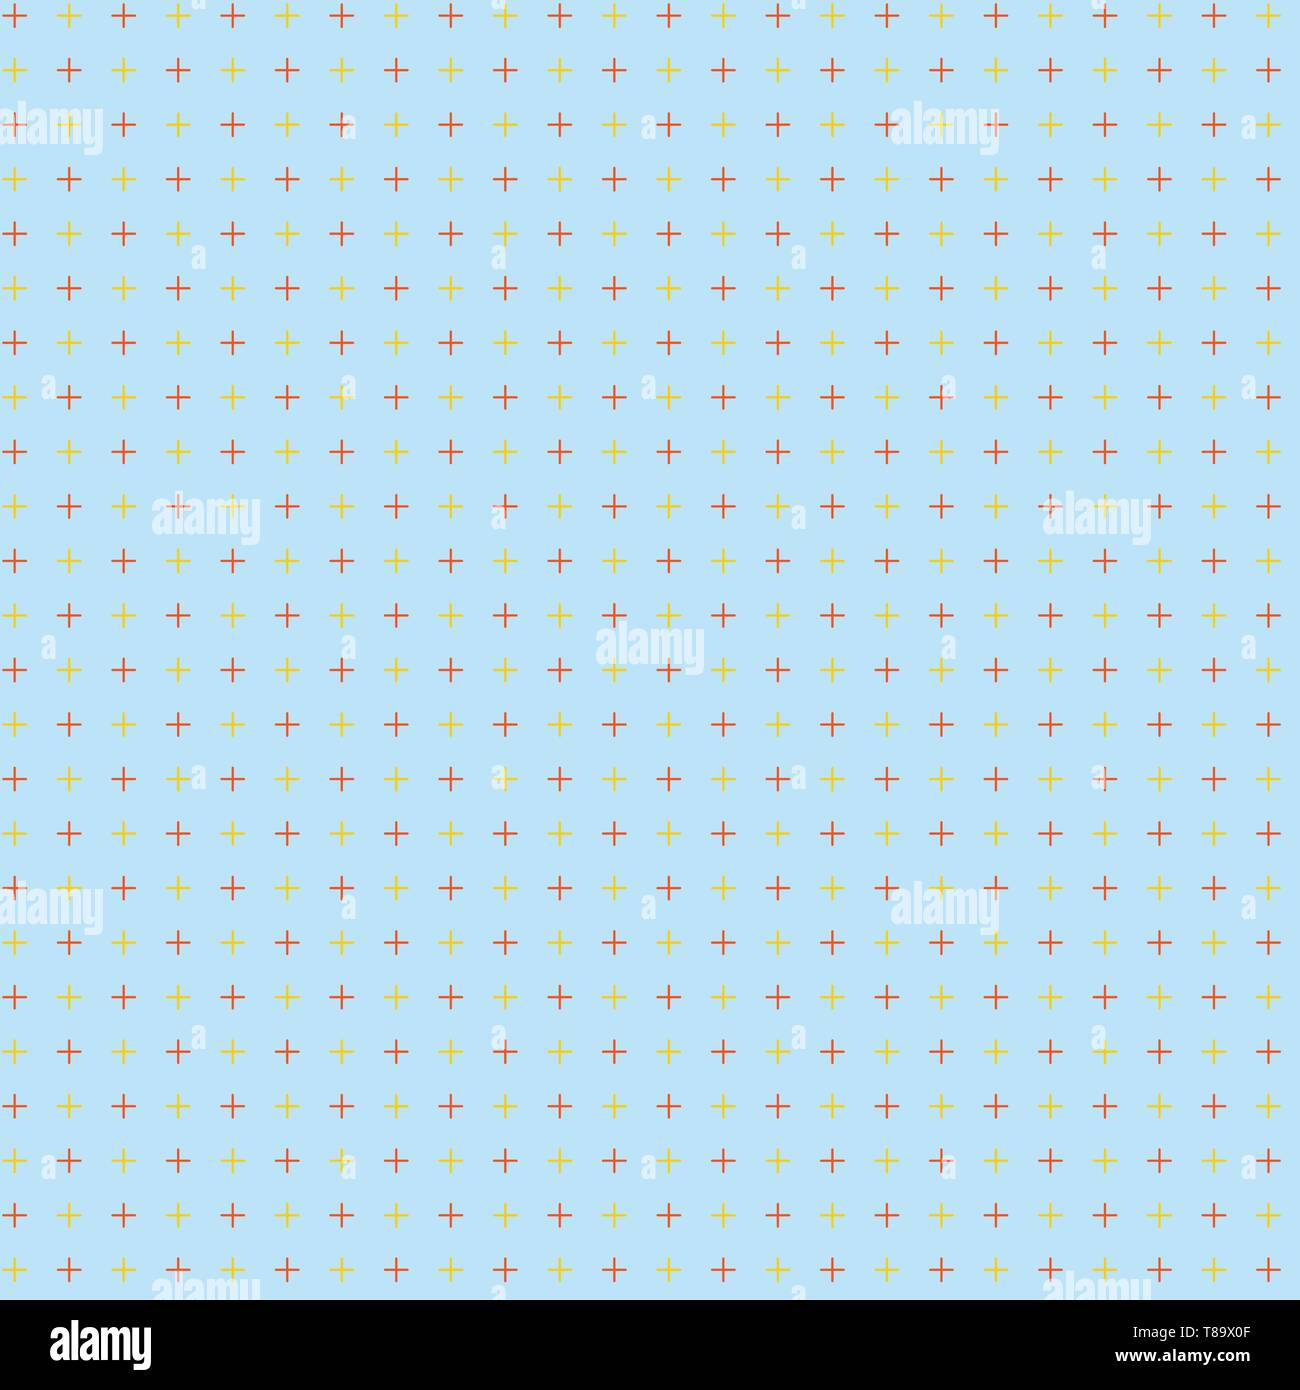 Infinite Endless Aligned Two Tone CrossStitch Plus Sign Pattern Repeated Design business concept Empty copy text for Web banners promotional material  - Stock Image